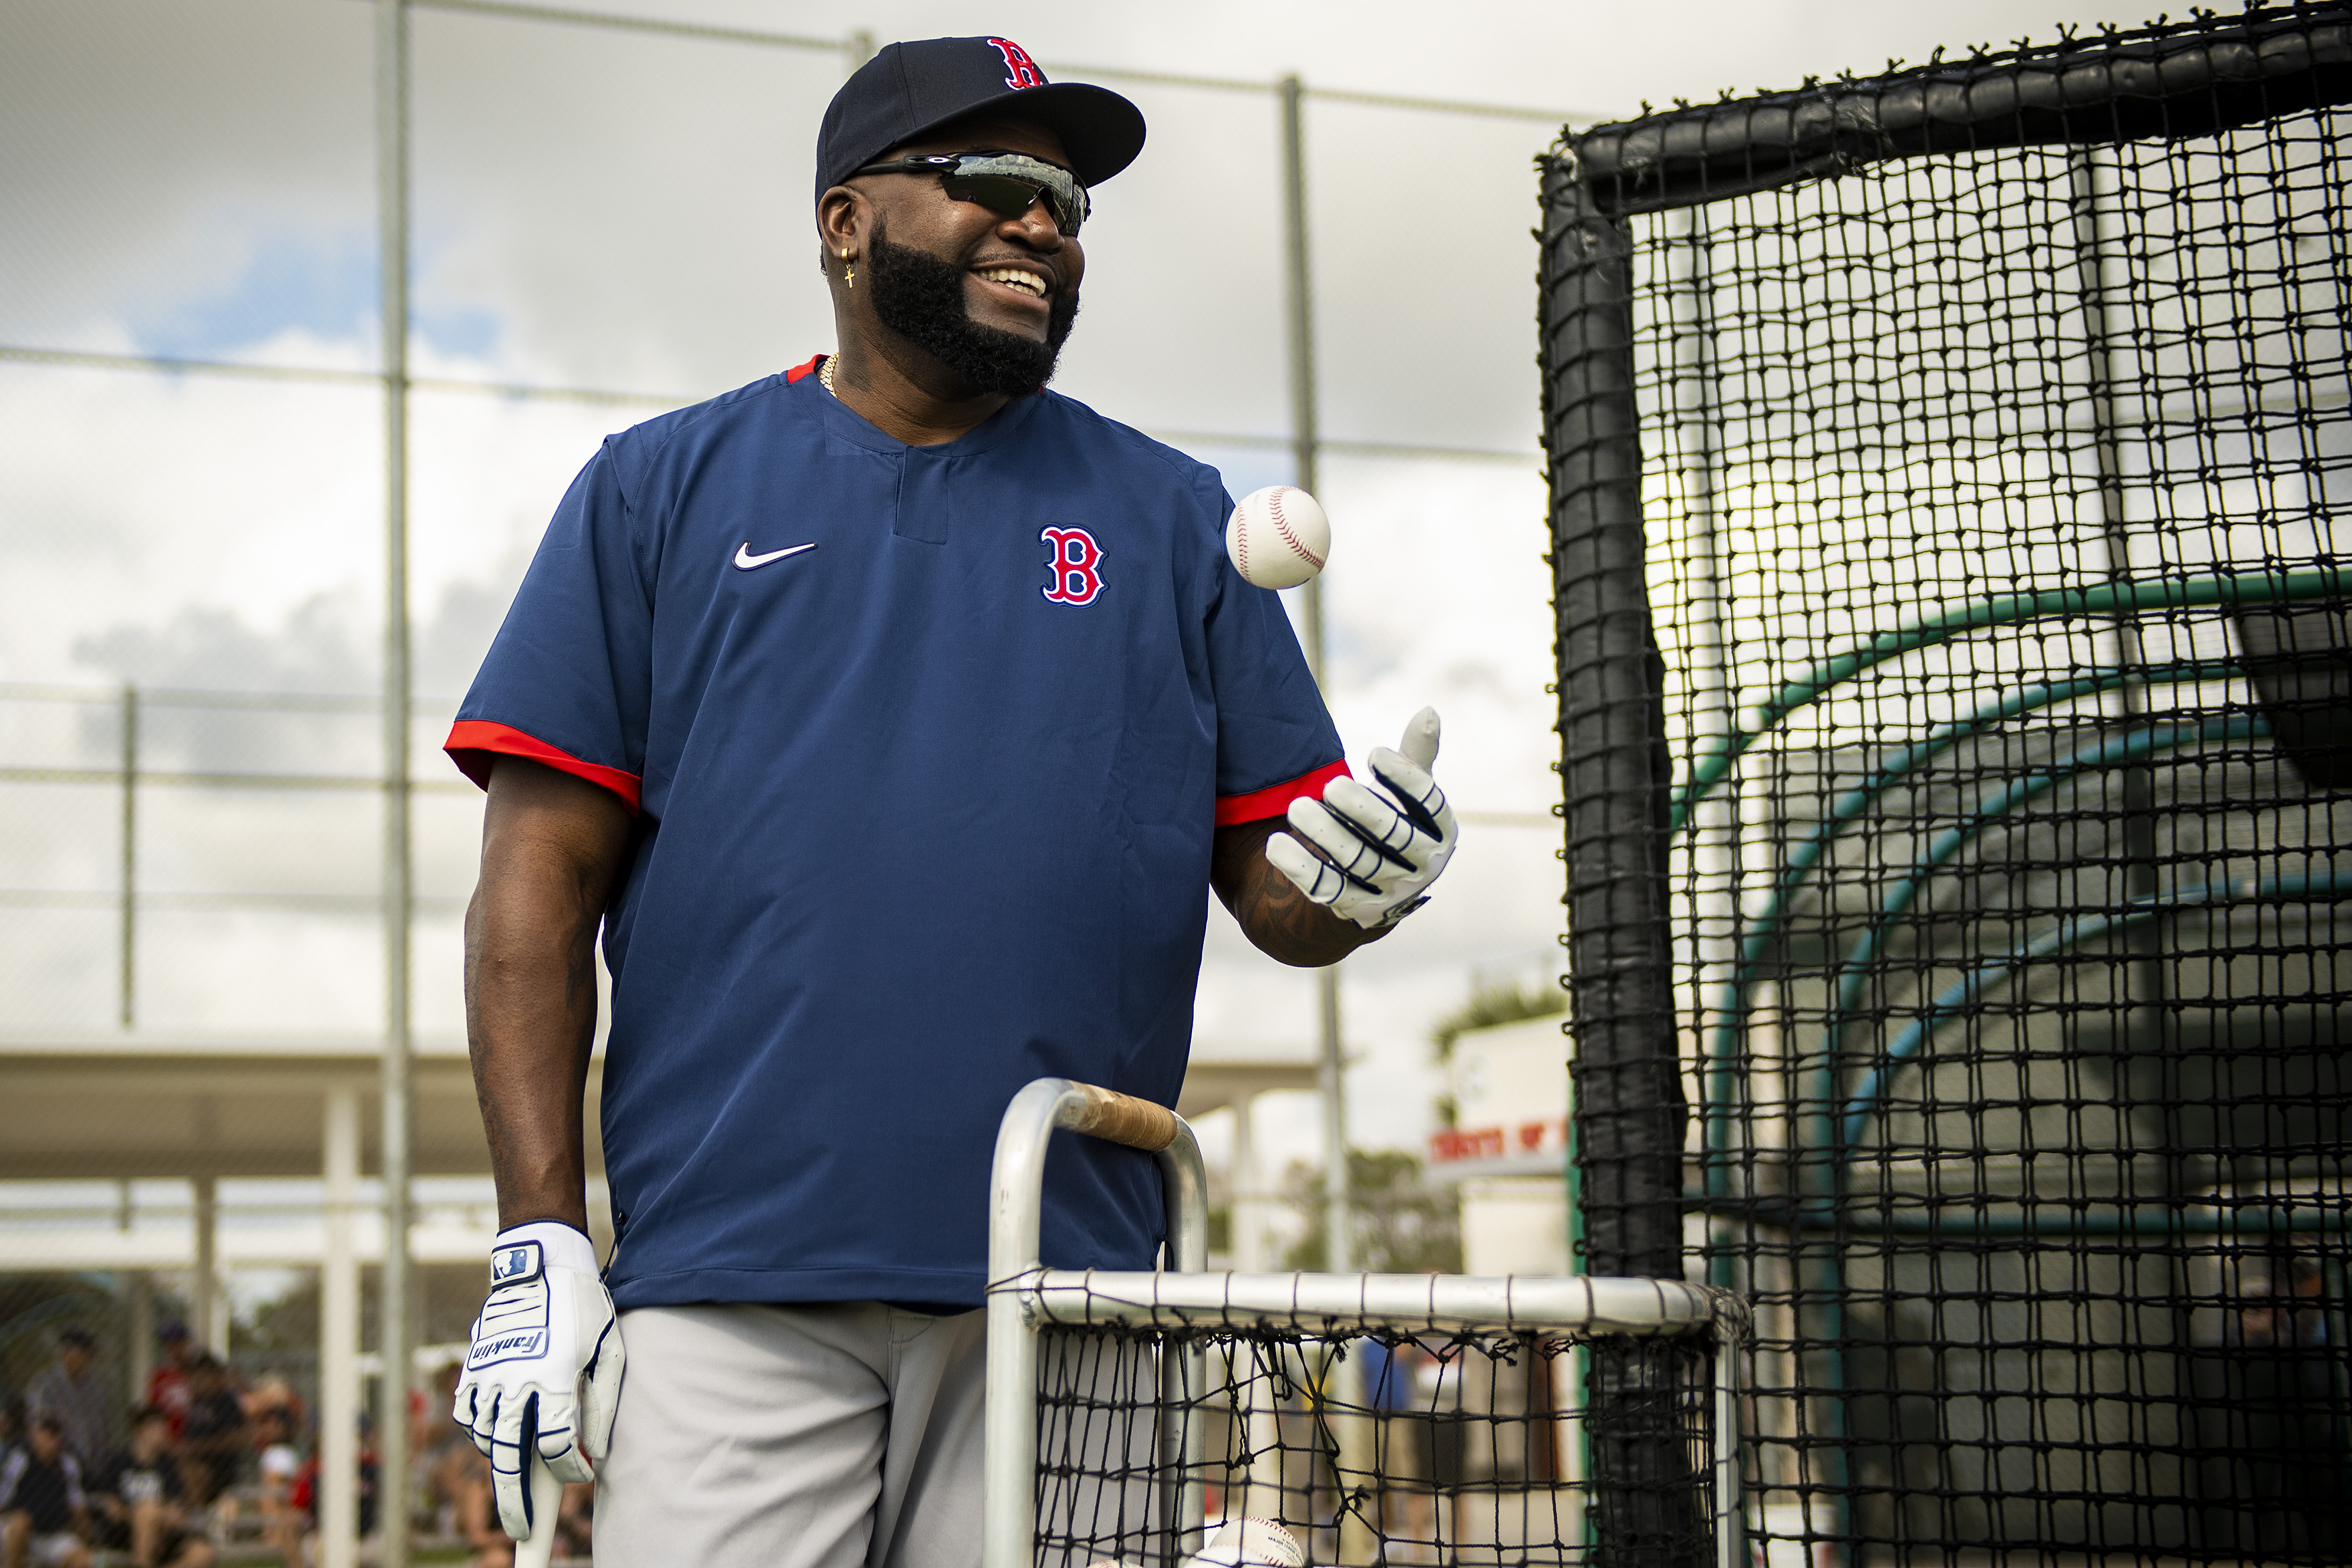 Former designated hitter David Ortiz of the Boston Red Sox smiles during a team workout on February 20 in Fort Myers, Florida.